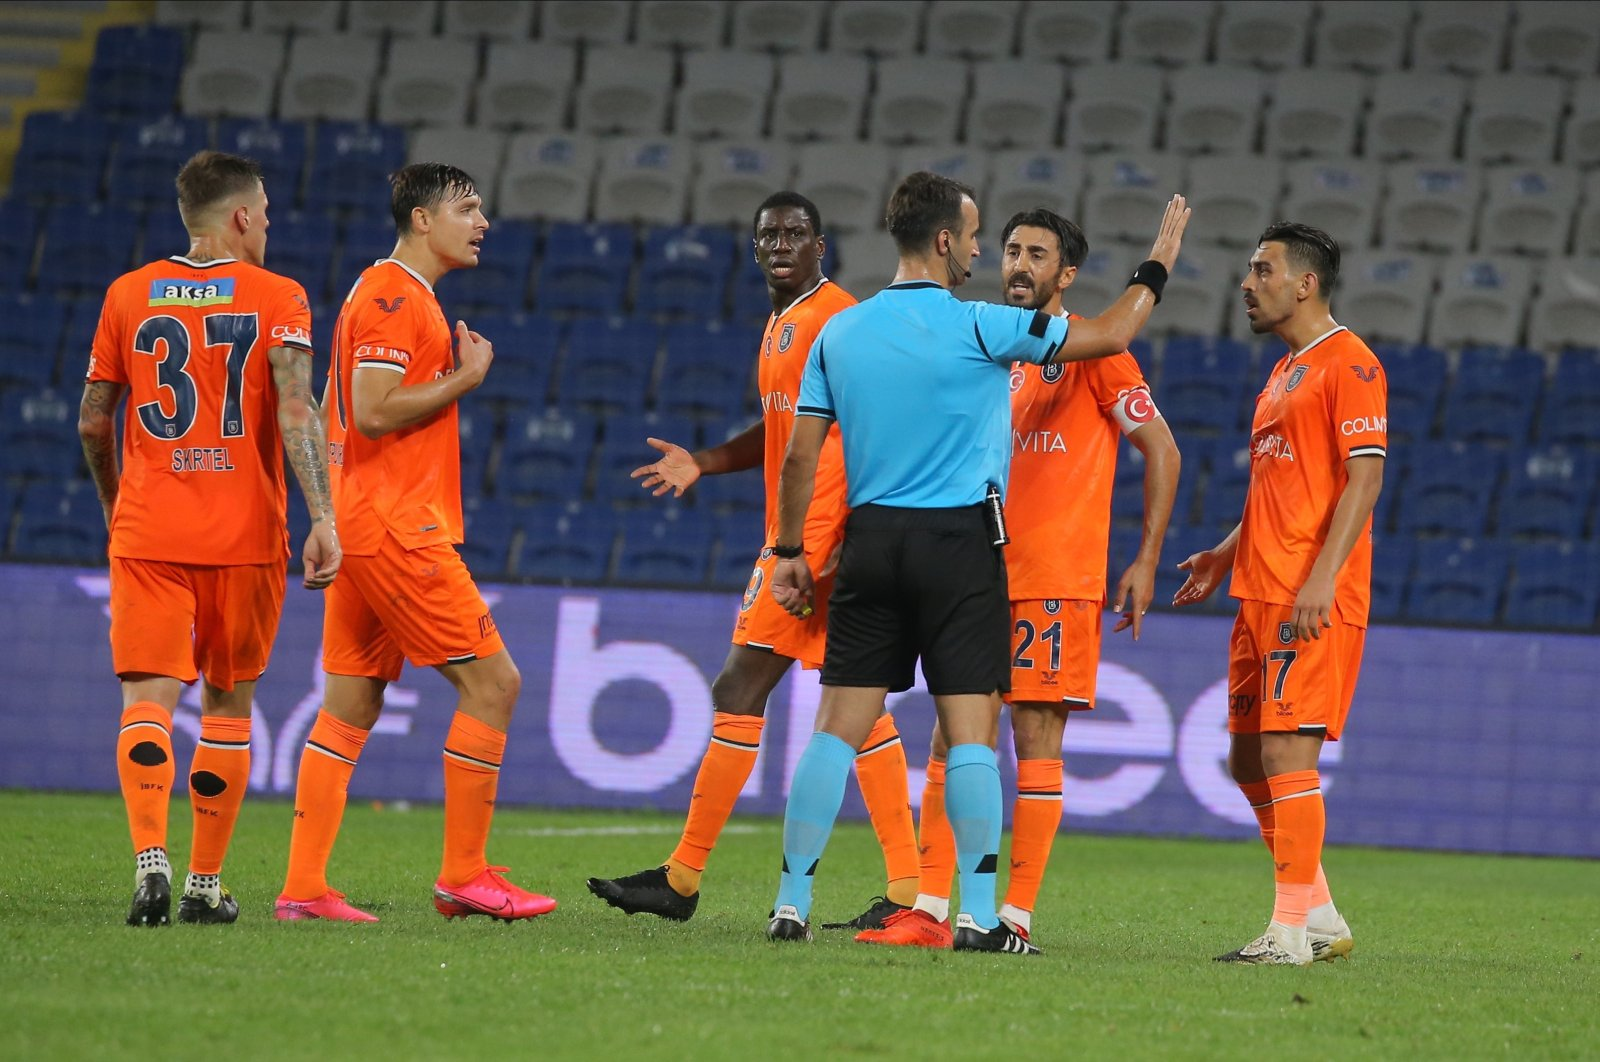 Başakşehir players react to a referee decision during a Süper Lig match against Galatasaray, in Istanbul, Turkey, Sept. 20, 2020. (IHA Photo)